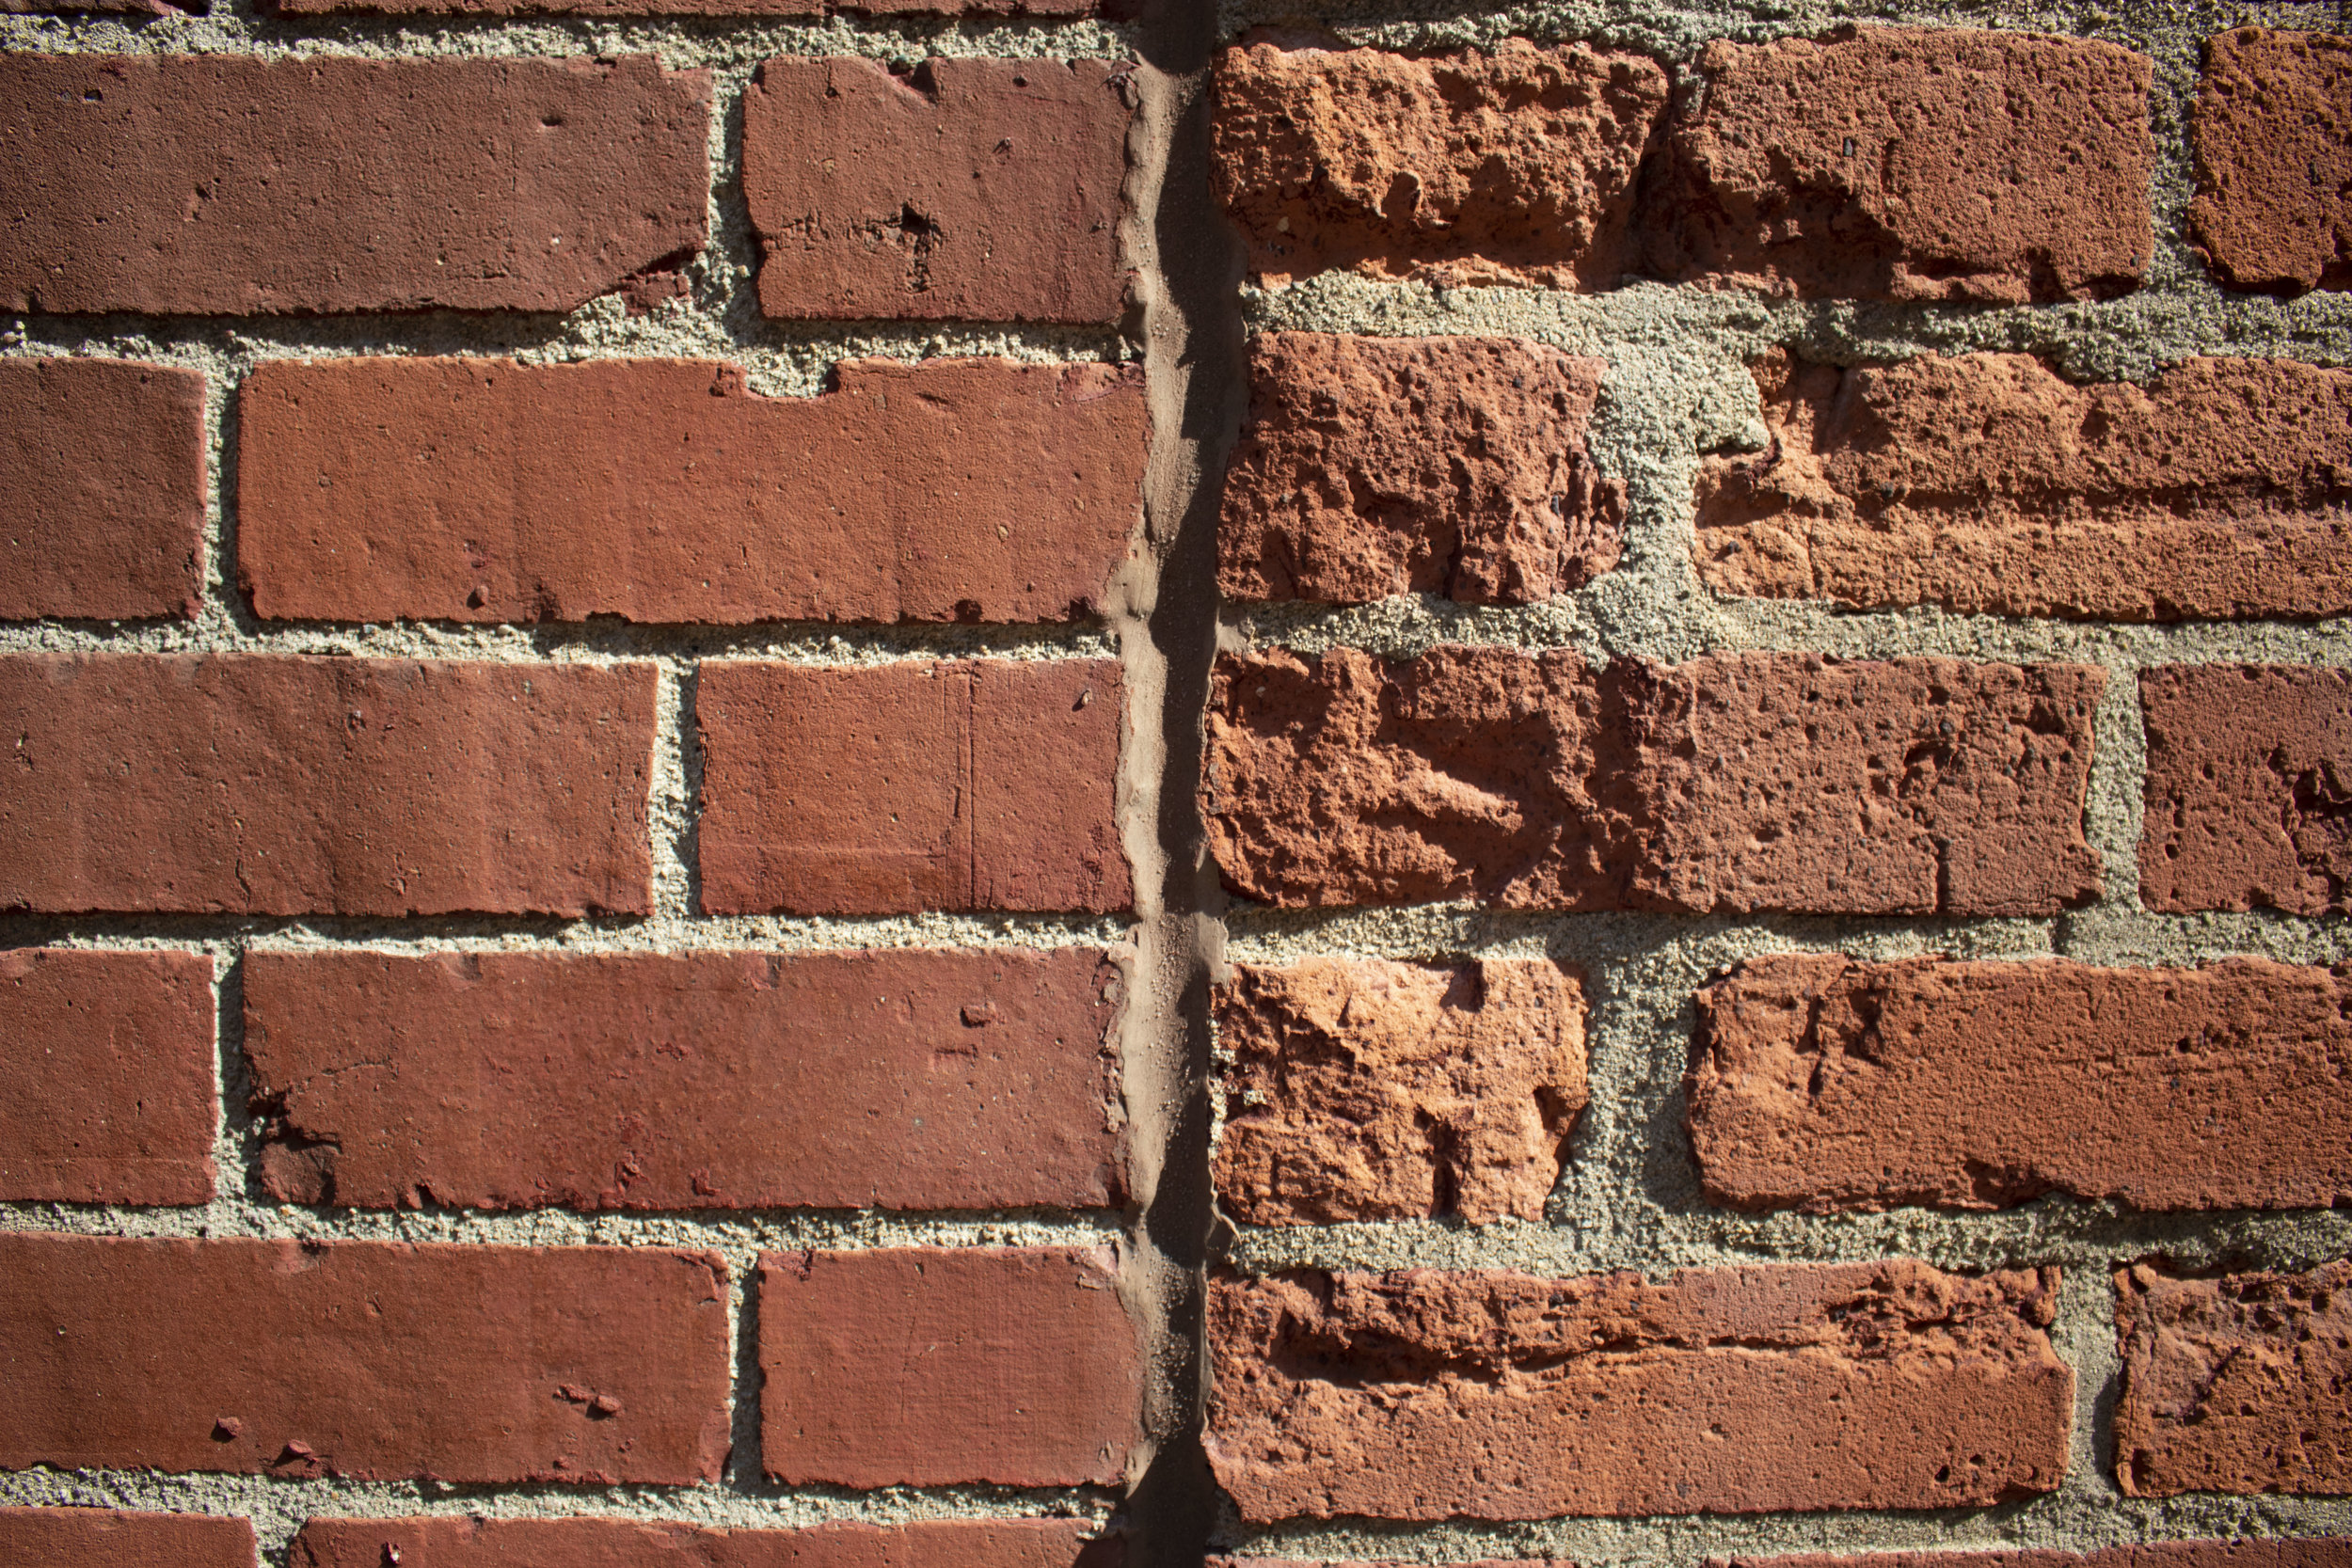 Spalled bricks